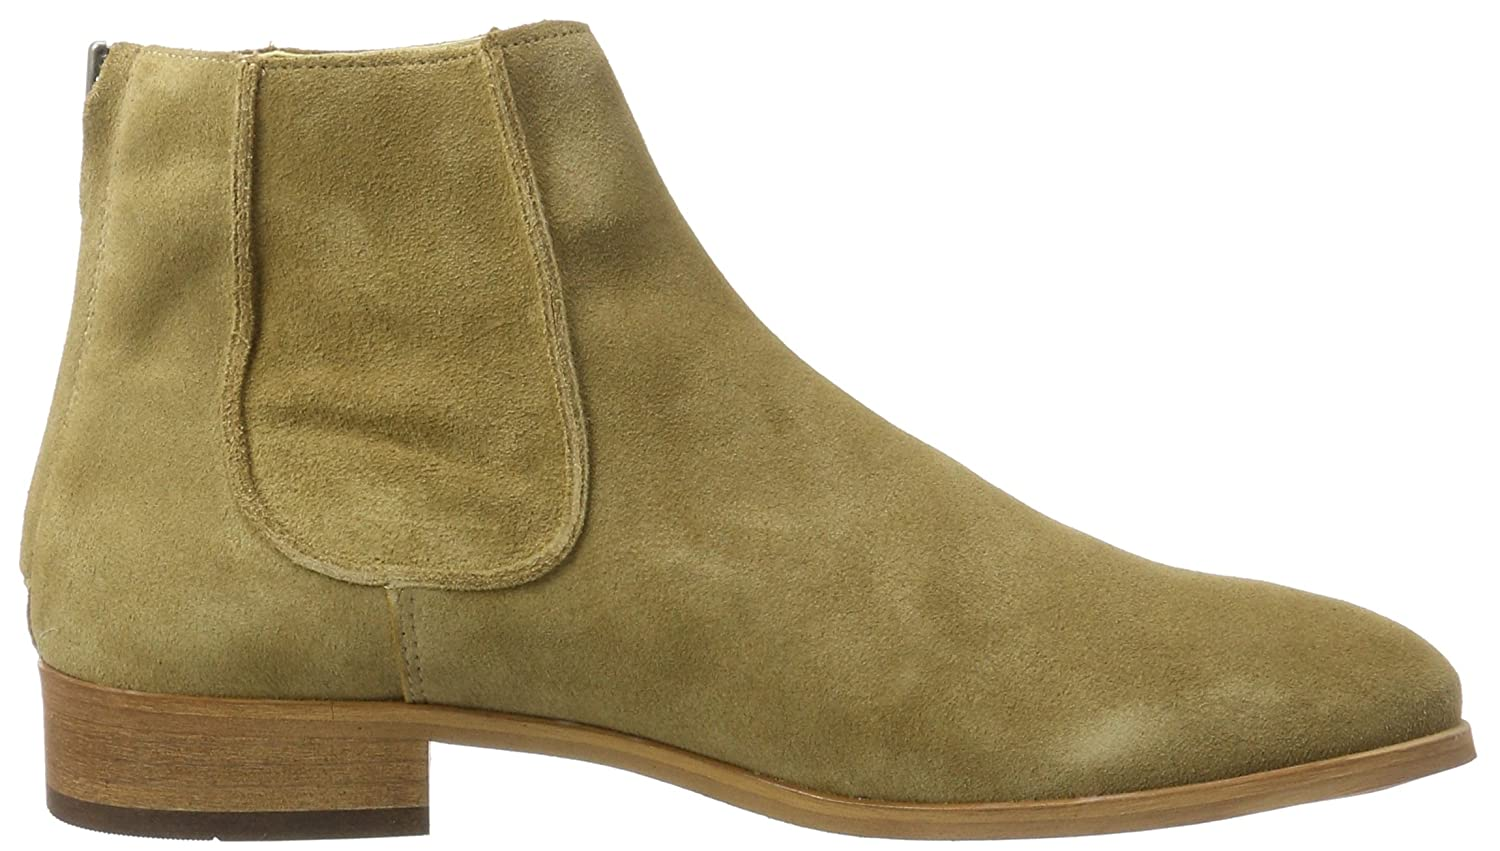 David S, Mens Chelsea Boots Shoe The Bear